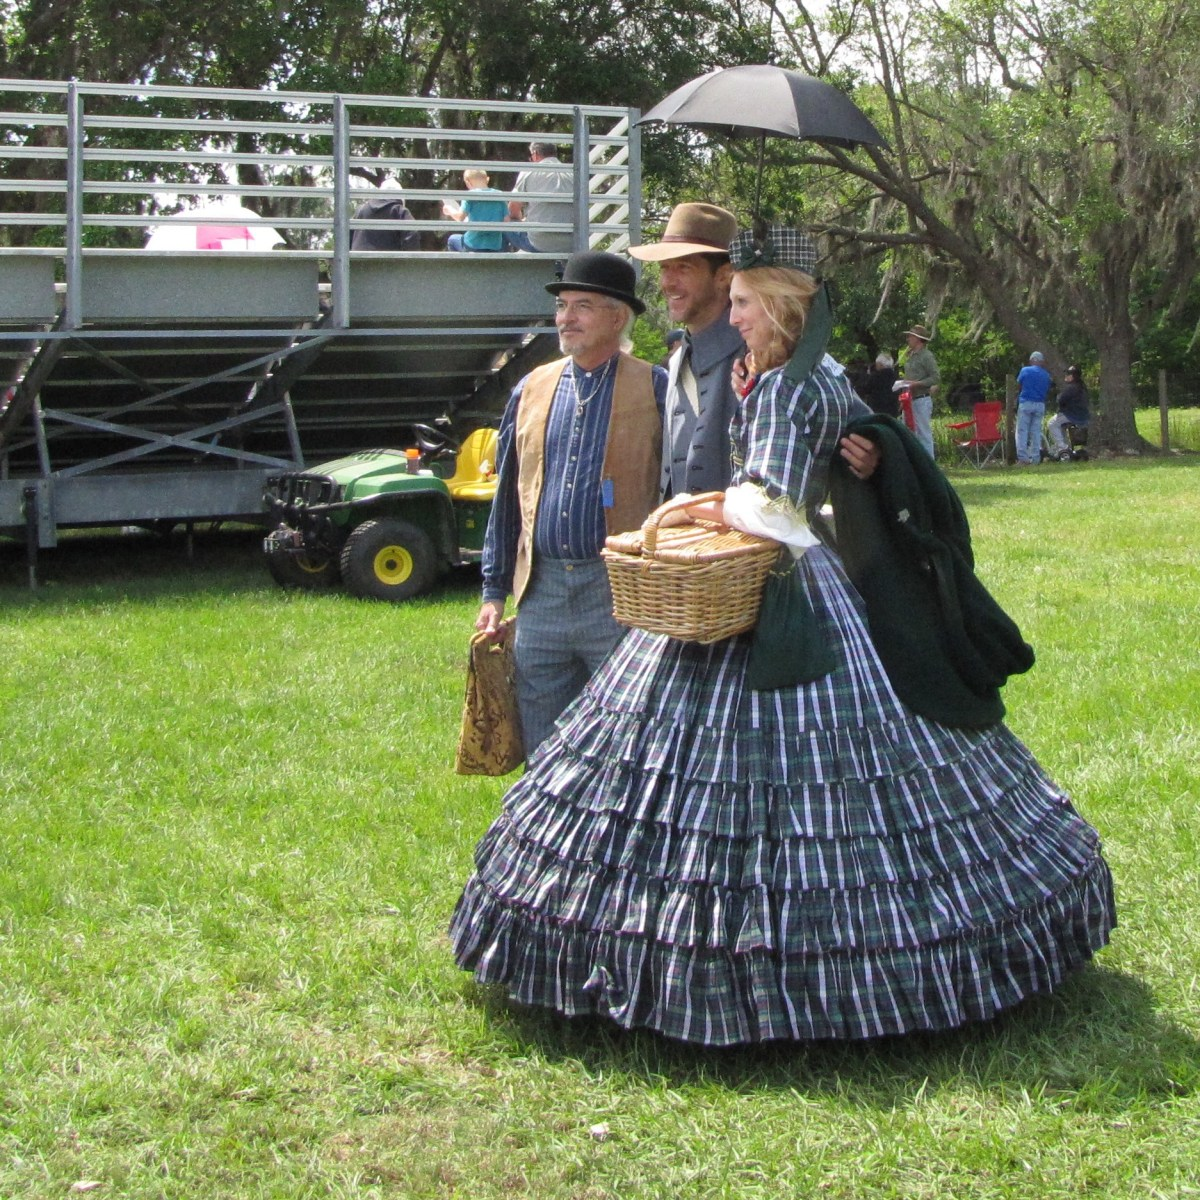 Re-enactors at an event in Florida. The re-enactors are dedicated in getting their costumes perfect for the time period.